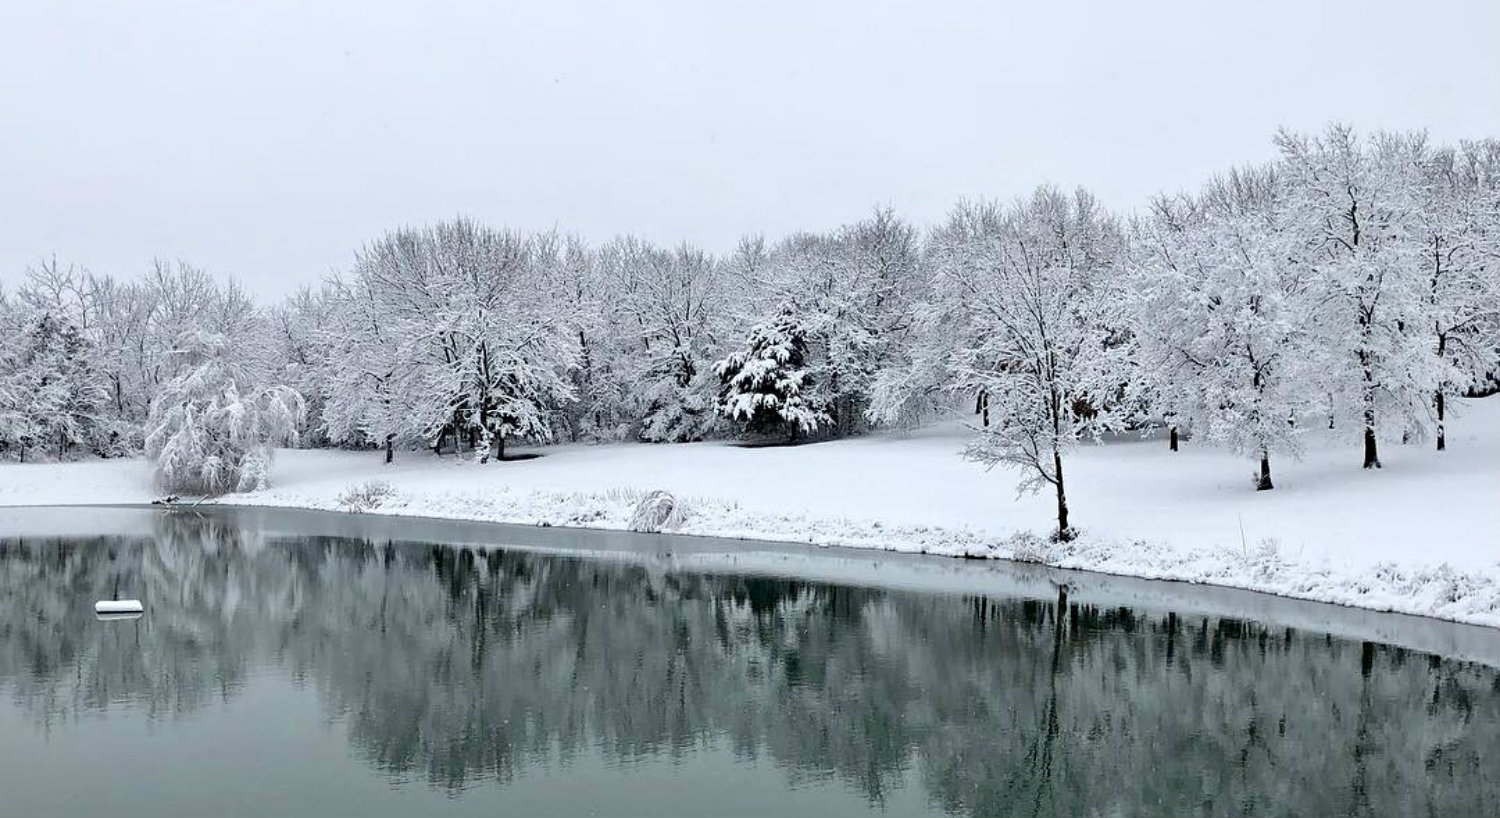 The pond surrounded by snow covered lawn and trees